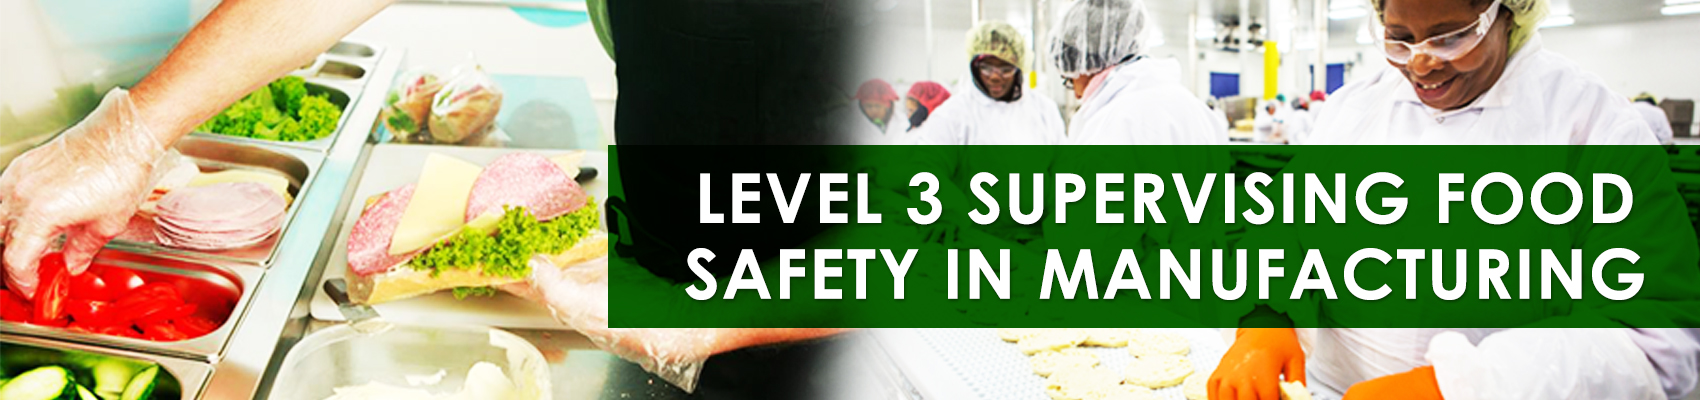 Level 3 Supervising Food Safety in Manufacturing